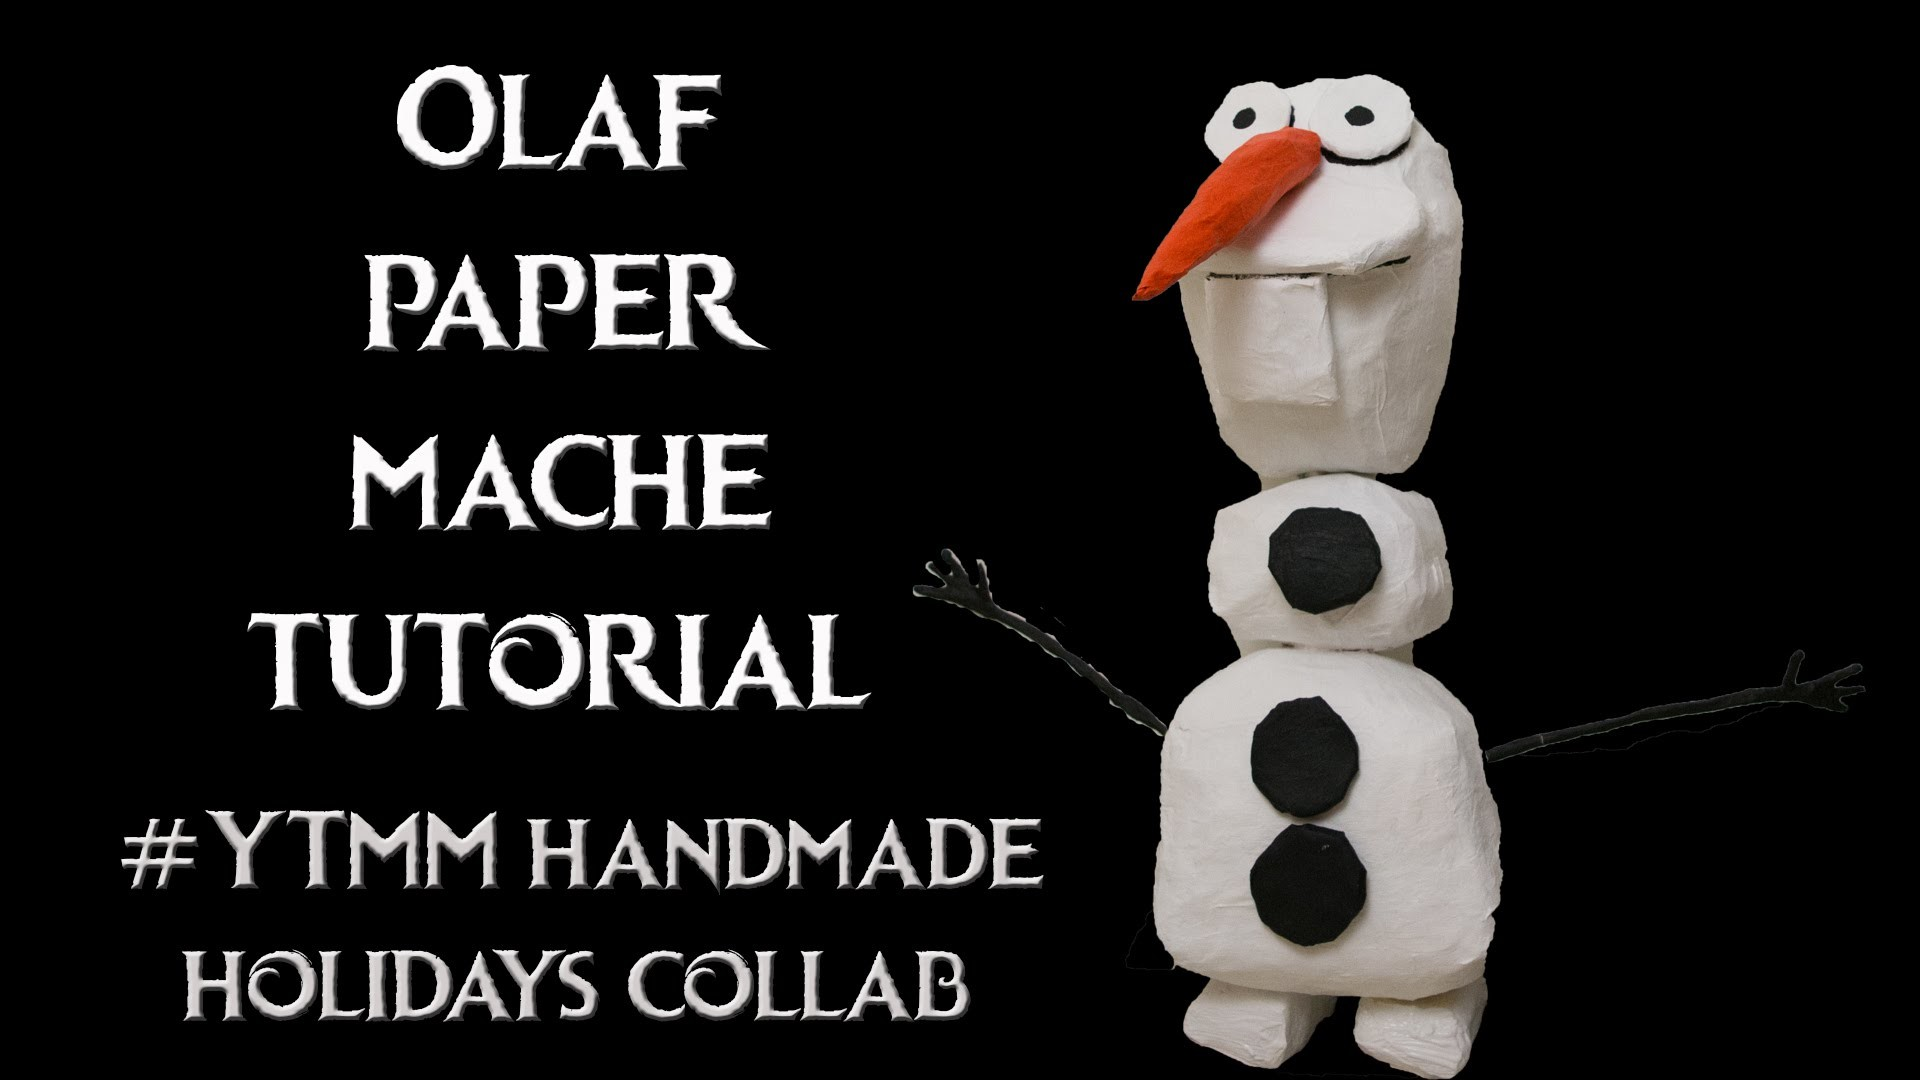 Olaf from Frozen paper mache tutorial #YTMM Homemade Holidays collab Dutchy Daily Vlog 104